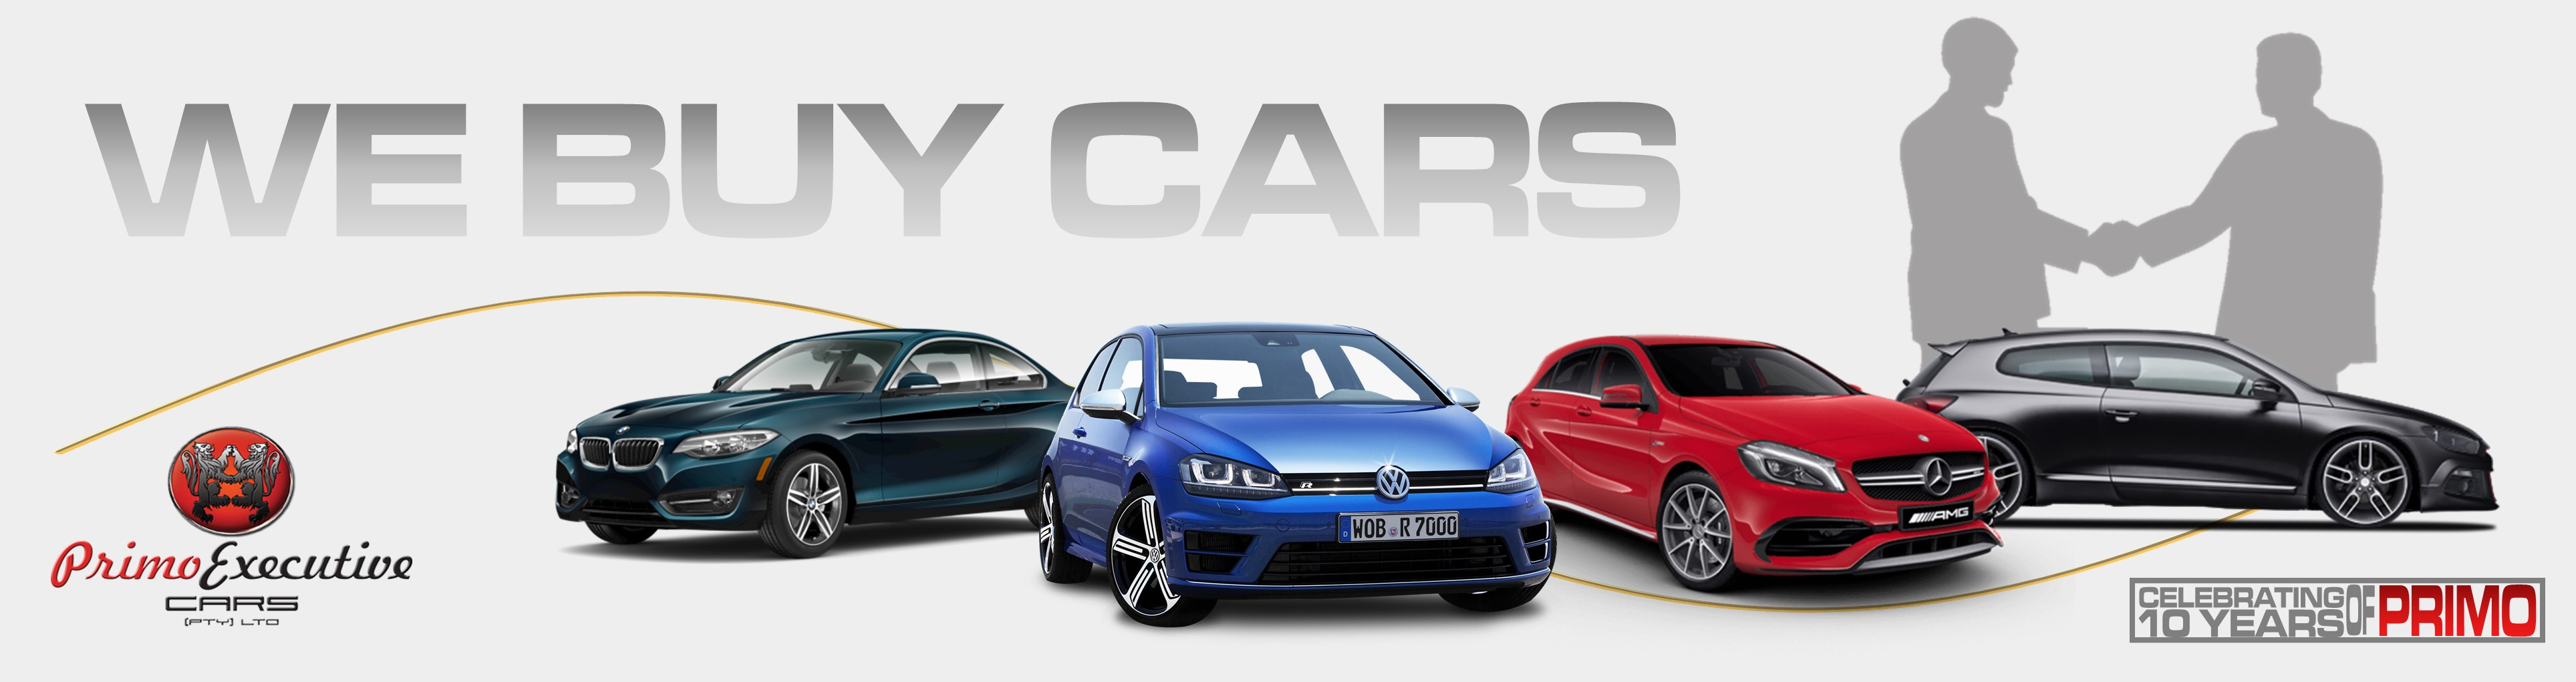 WE BUY CARS – Primo Executive Cars